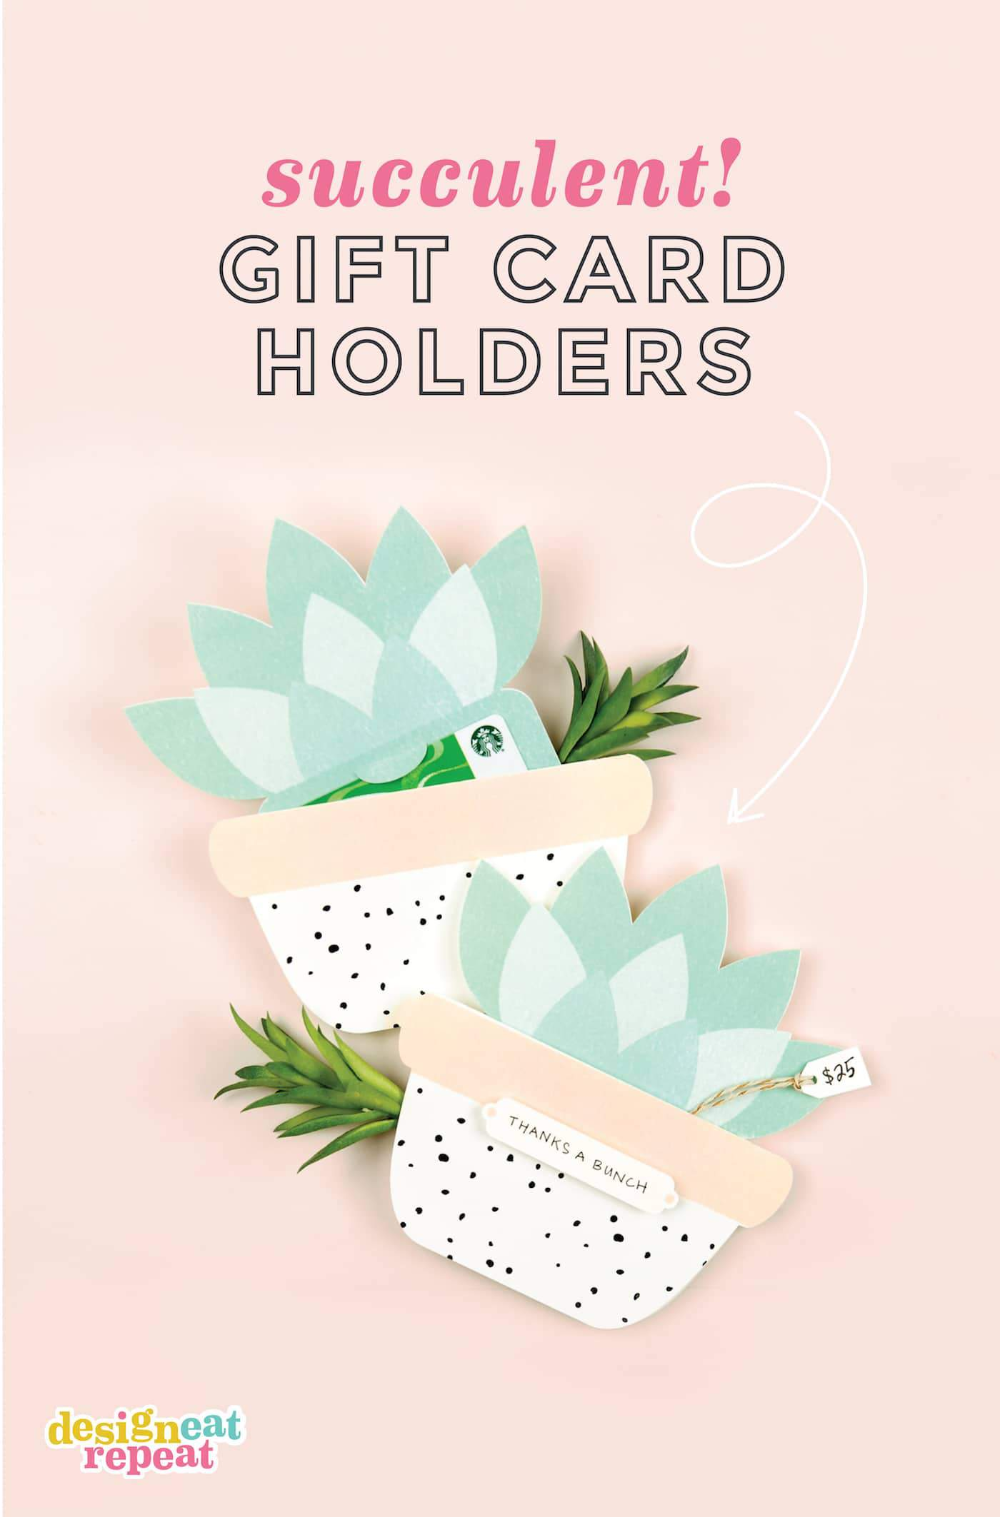 Cute Succulent Printable Gift Card Holder Design Eat Repeat In 2020 Gift Card Holder Template Gift Card Template Gift Card Design